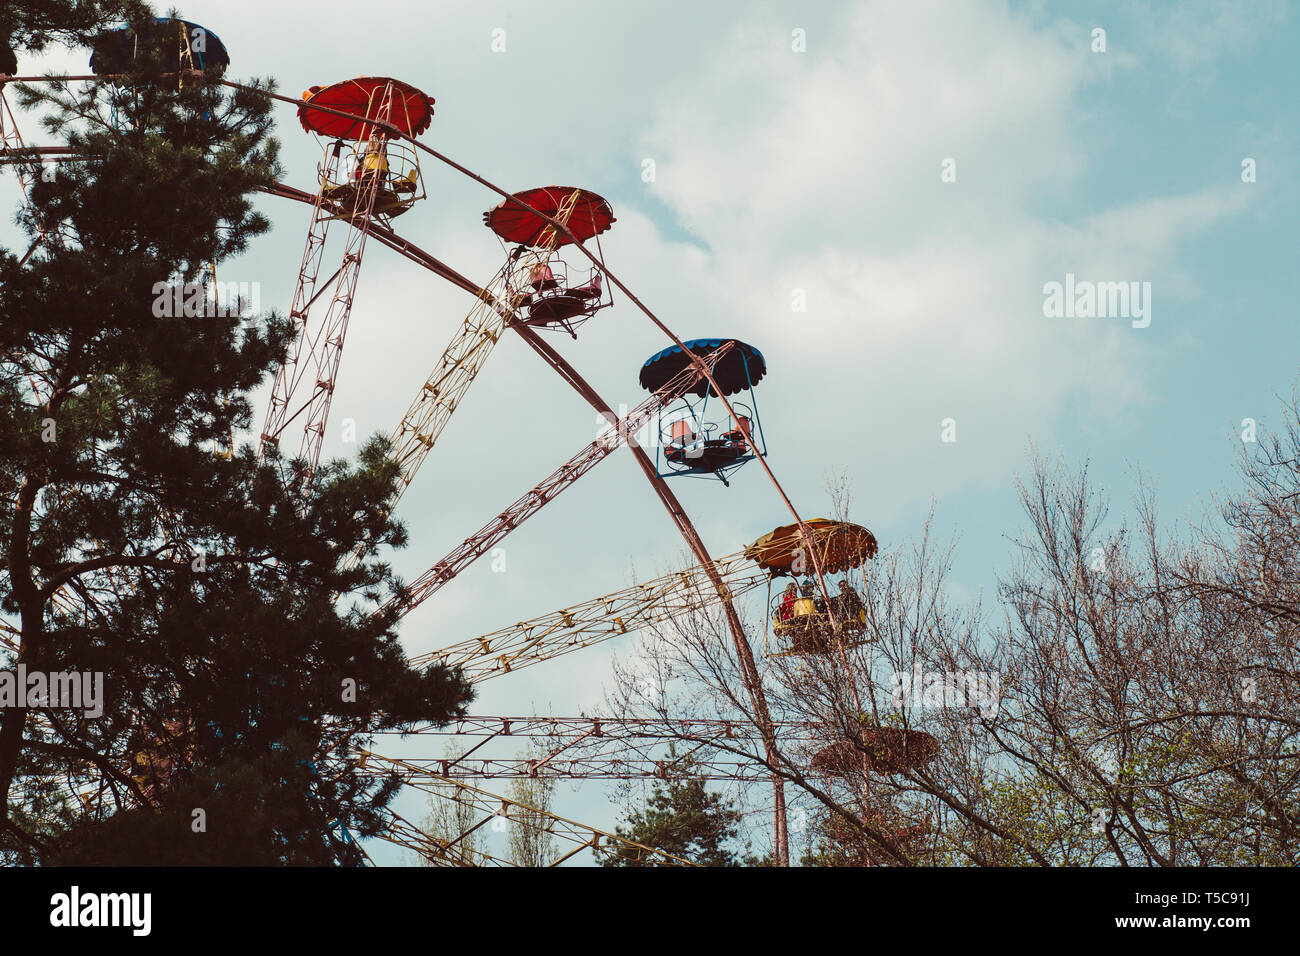 ferris wheel on a background of clouds in the city - Stock Image